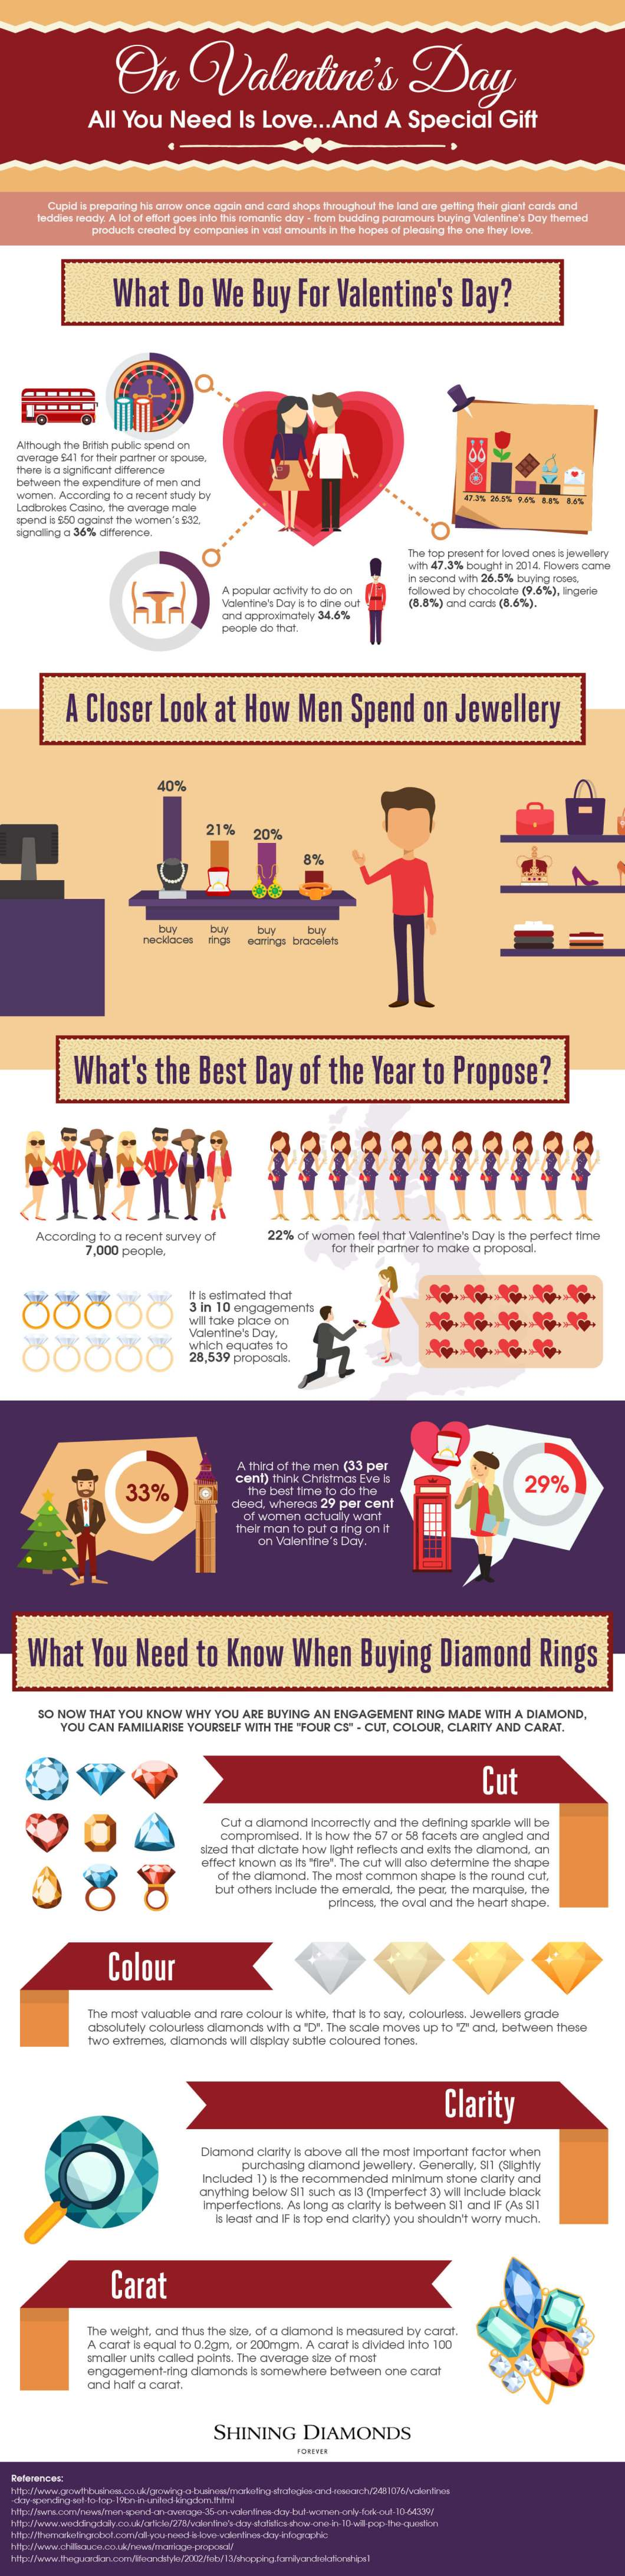 Tips to Choose Valentine's Day Special Gifts - Infographic